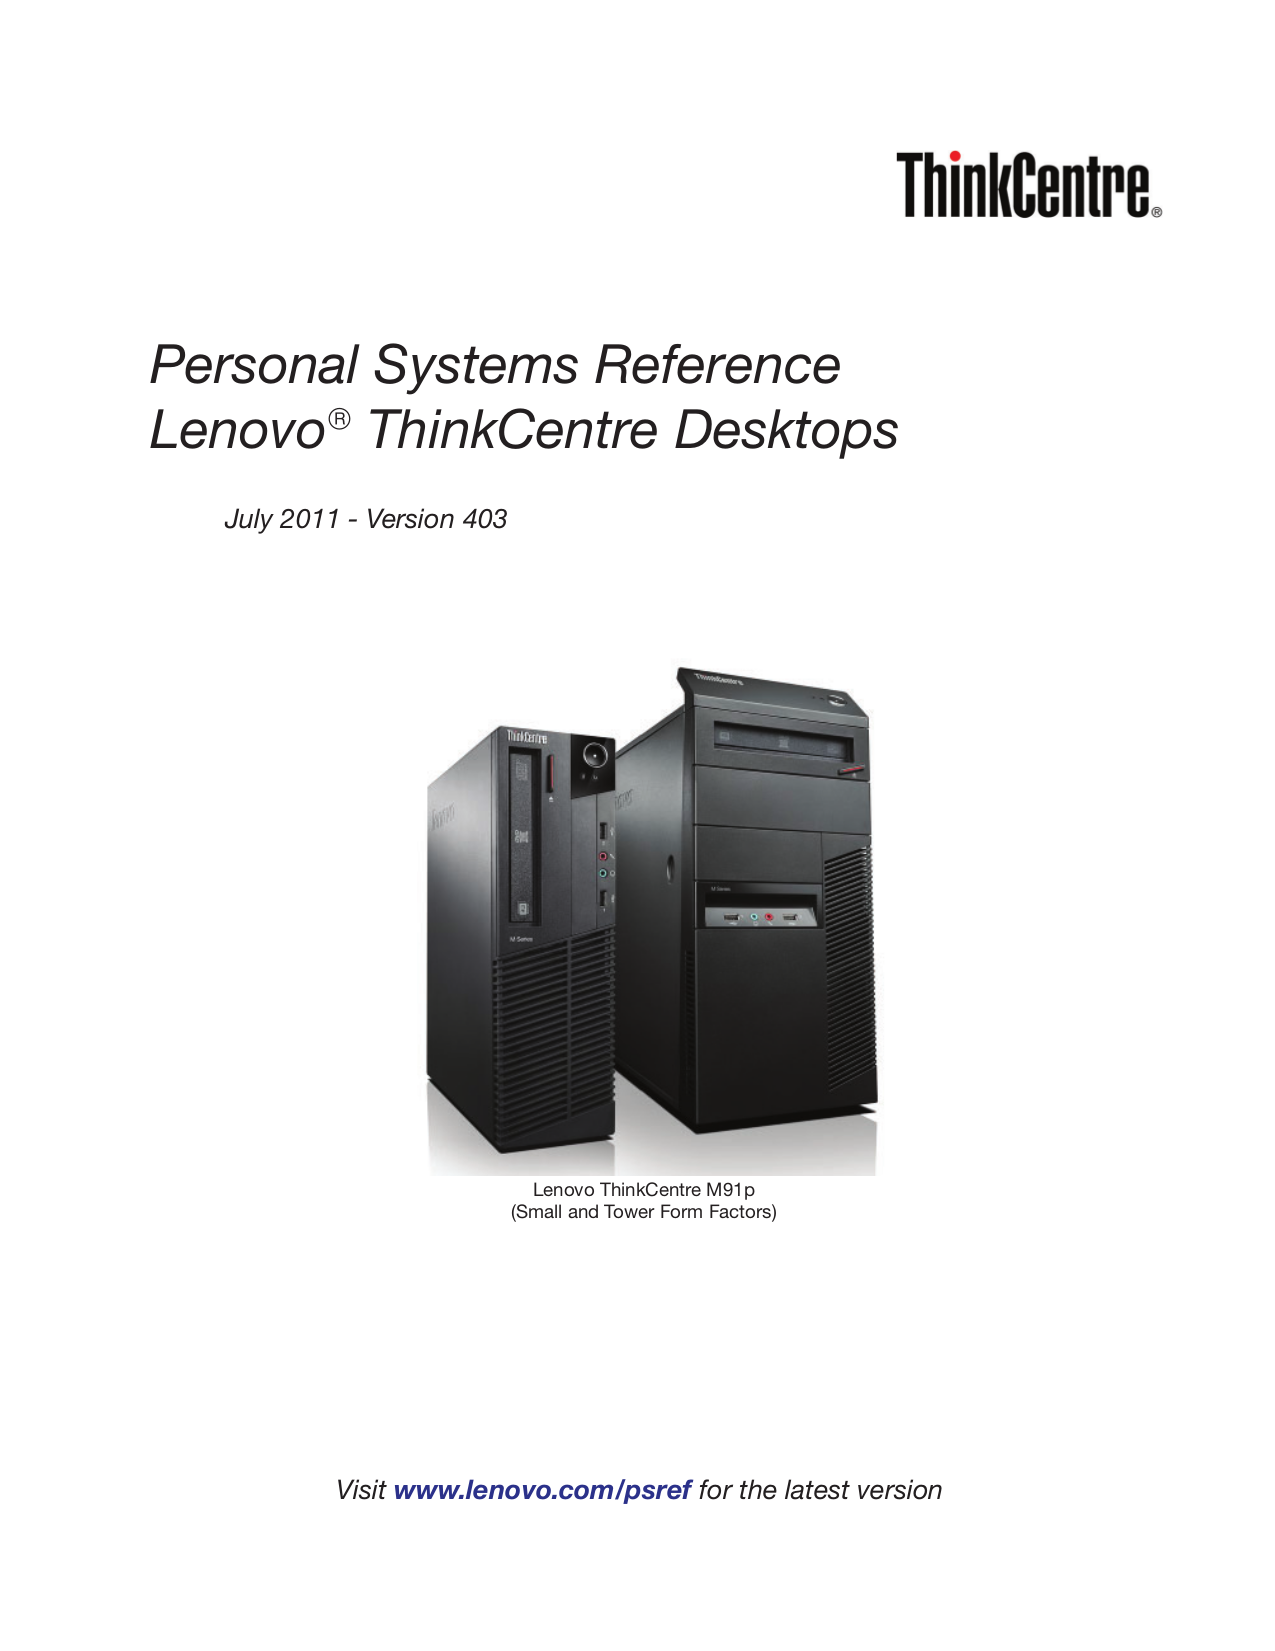 pdf for Lenovo Desktop ThinkCentre Edge 91z 7075 manual